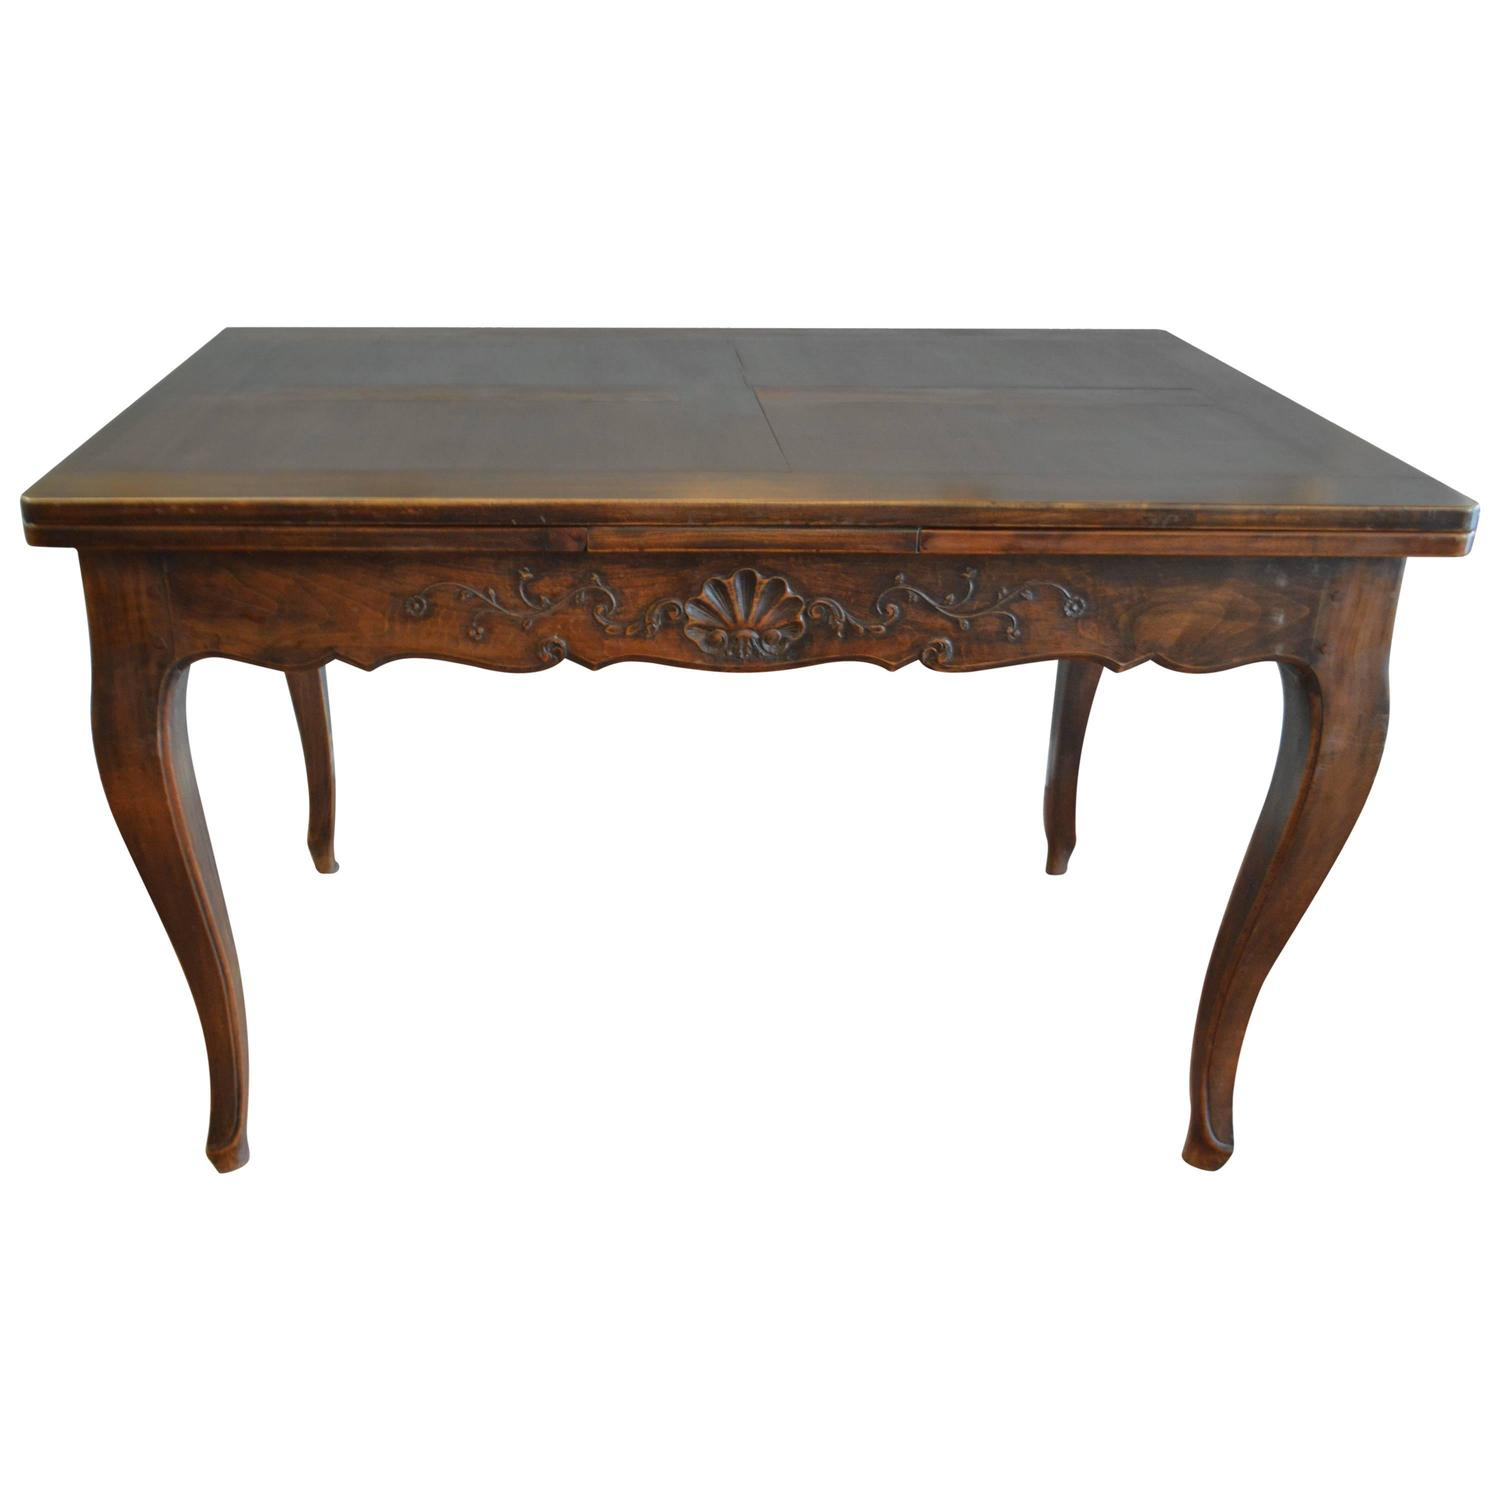 Dining Room Table Styles Of French Country Style Walnut Dining Table At 1stdibs